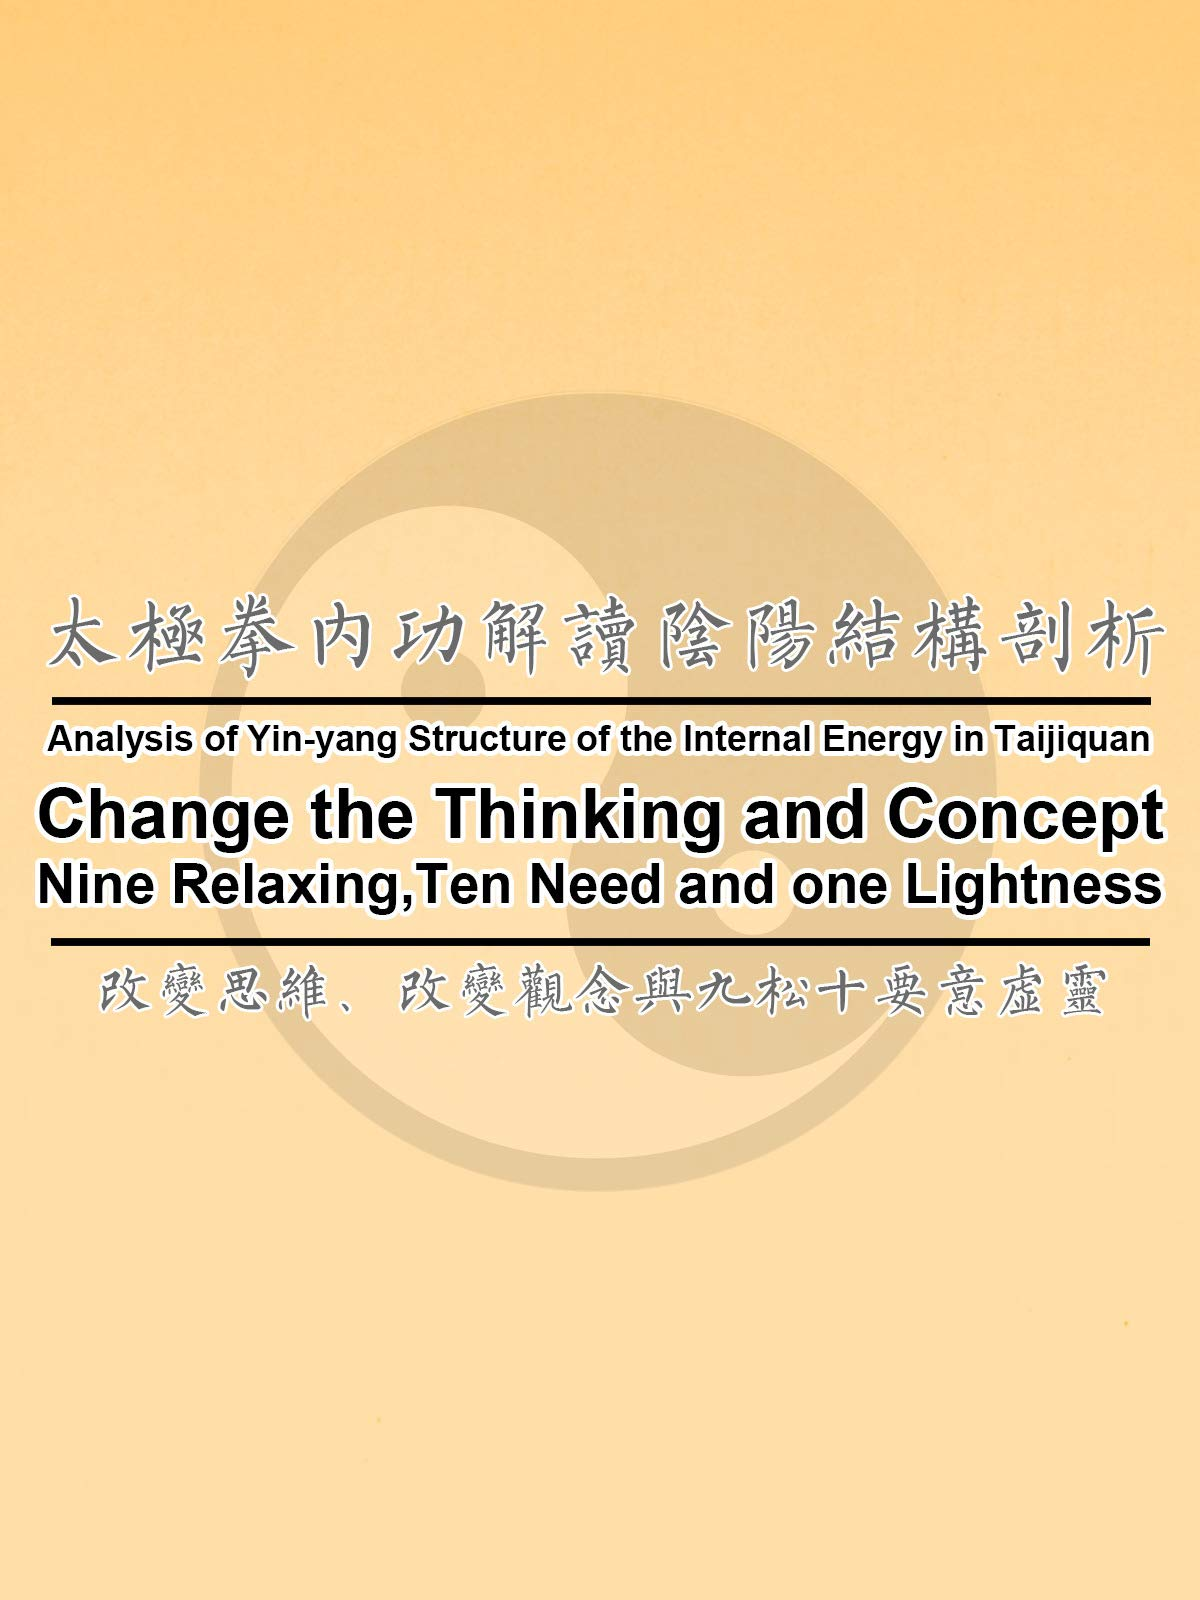 Change the Thinking and Concept,Nine Relaxing,Ten Need and One Lightness